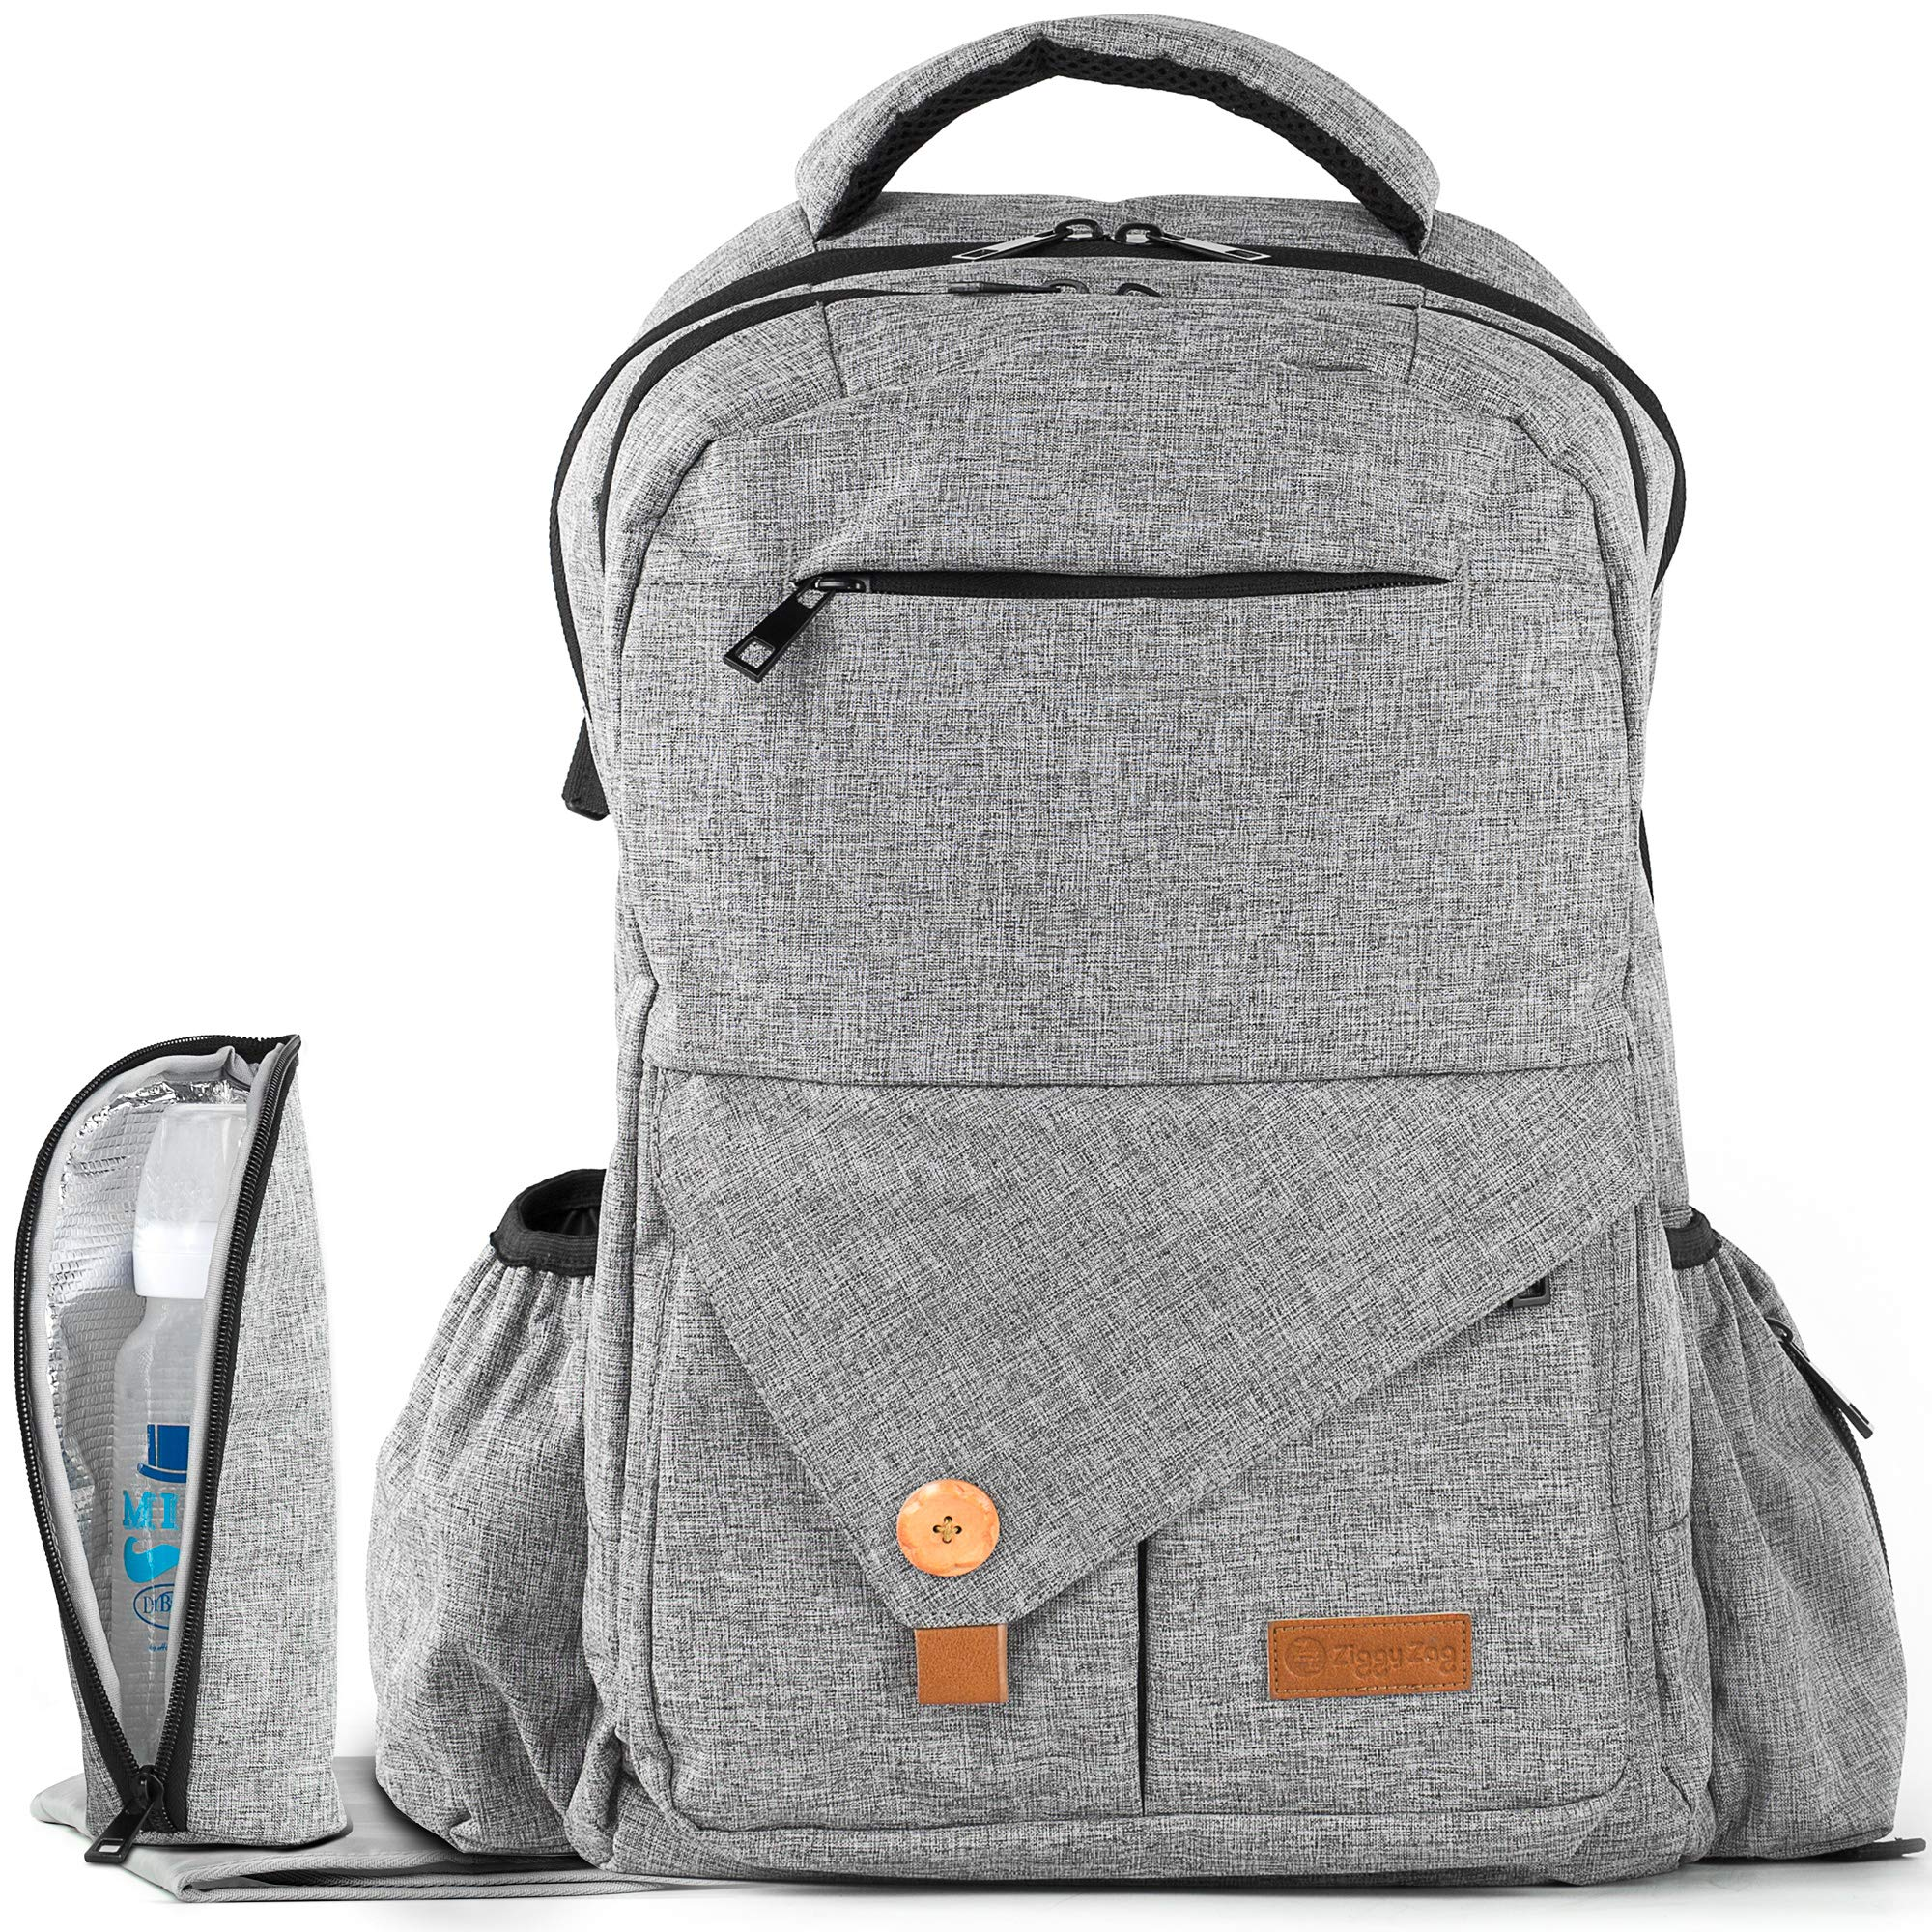 Diaper Bag Backpack | Easy Travel for Active Parents | Max Durability & Storage Capacity | Light Gray Classic Unisex Style | Bonus Change Pad & Insulated Bottle Sleeve | Large Diaper Backpack by ZiggyZag